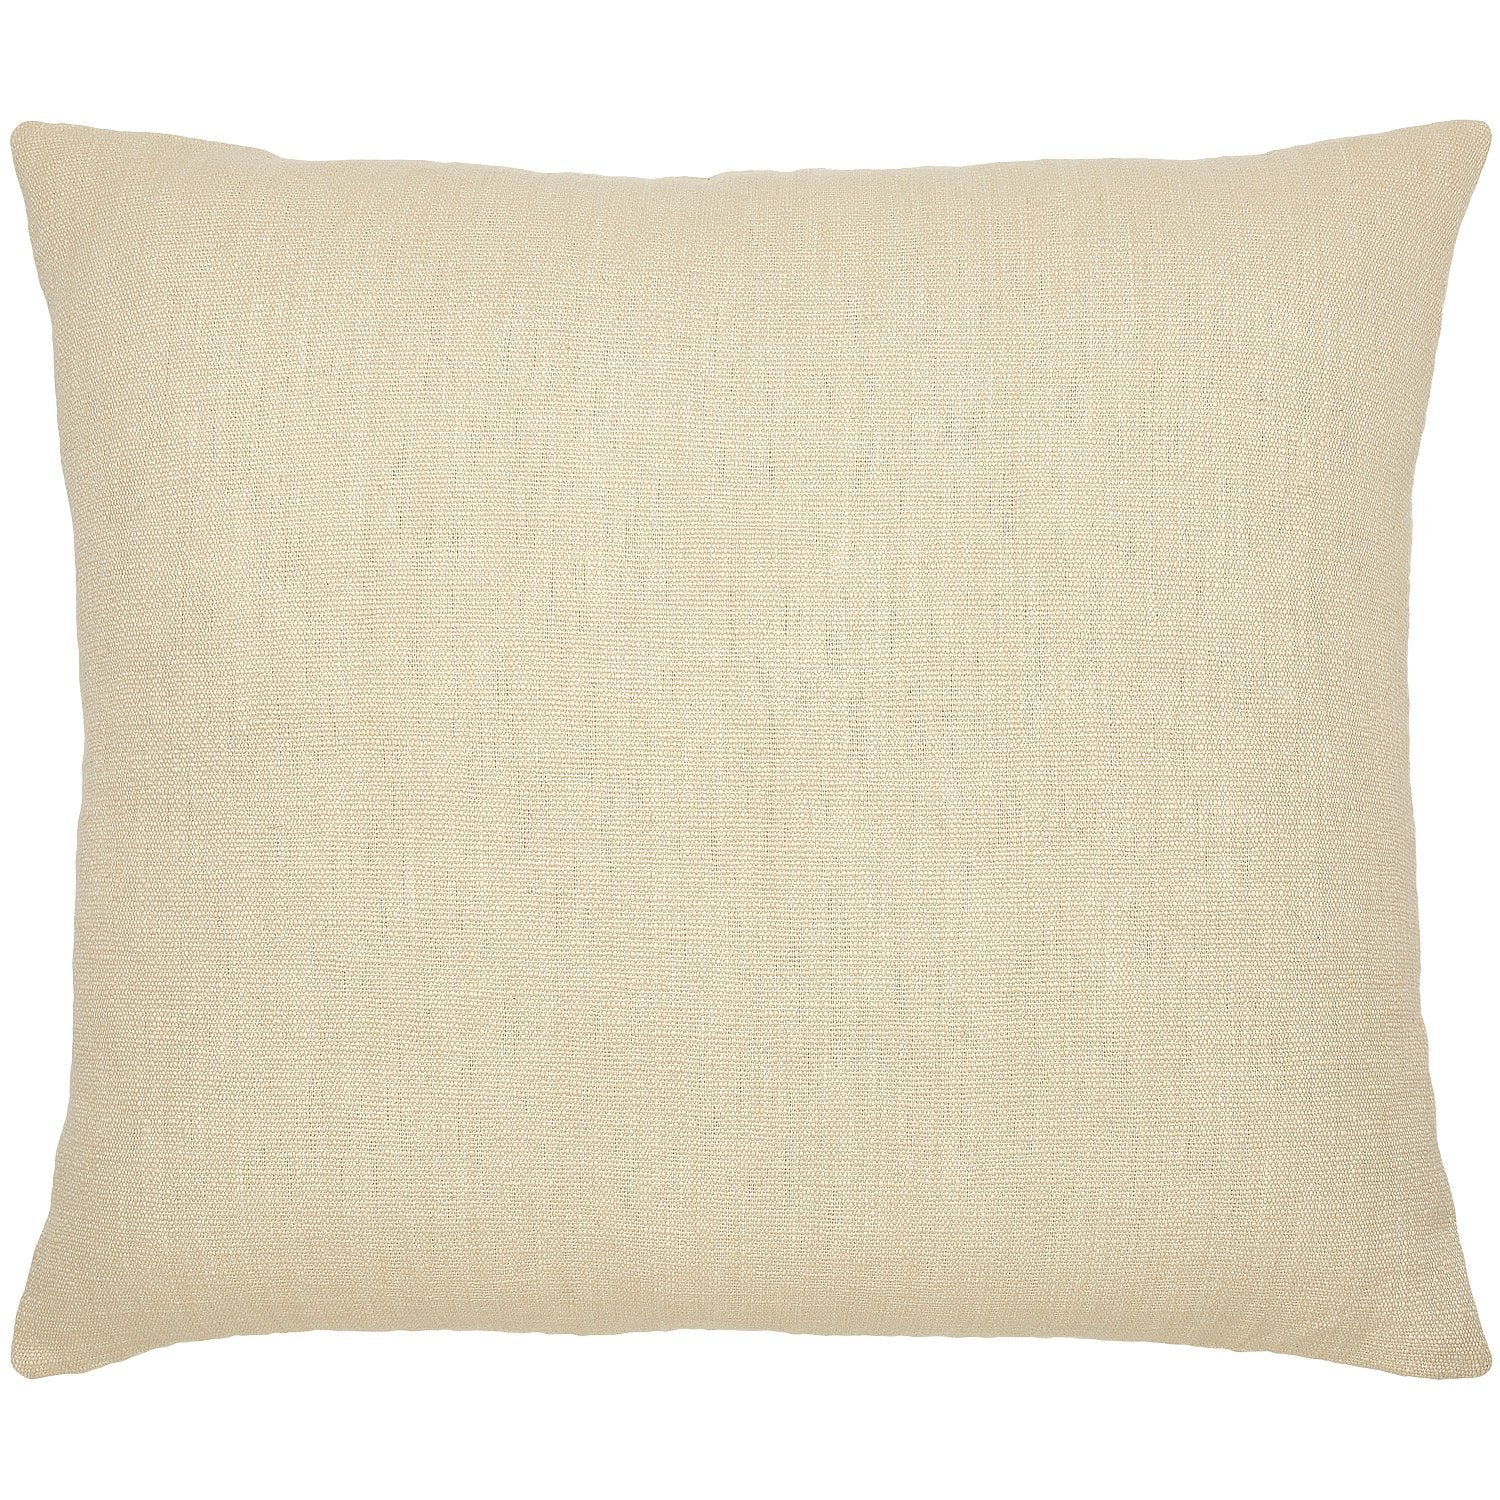 Aamil Sand King Euro Pillow by John Robshaw